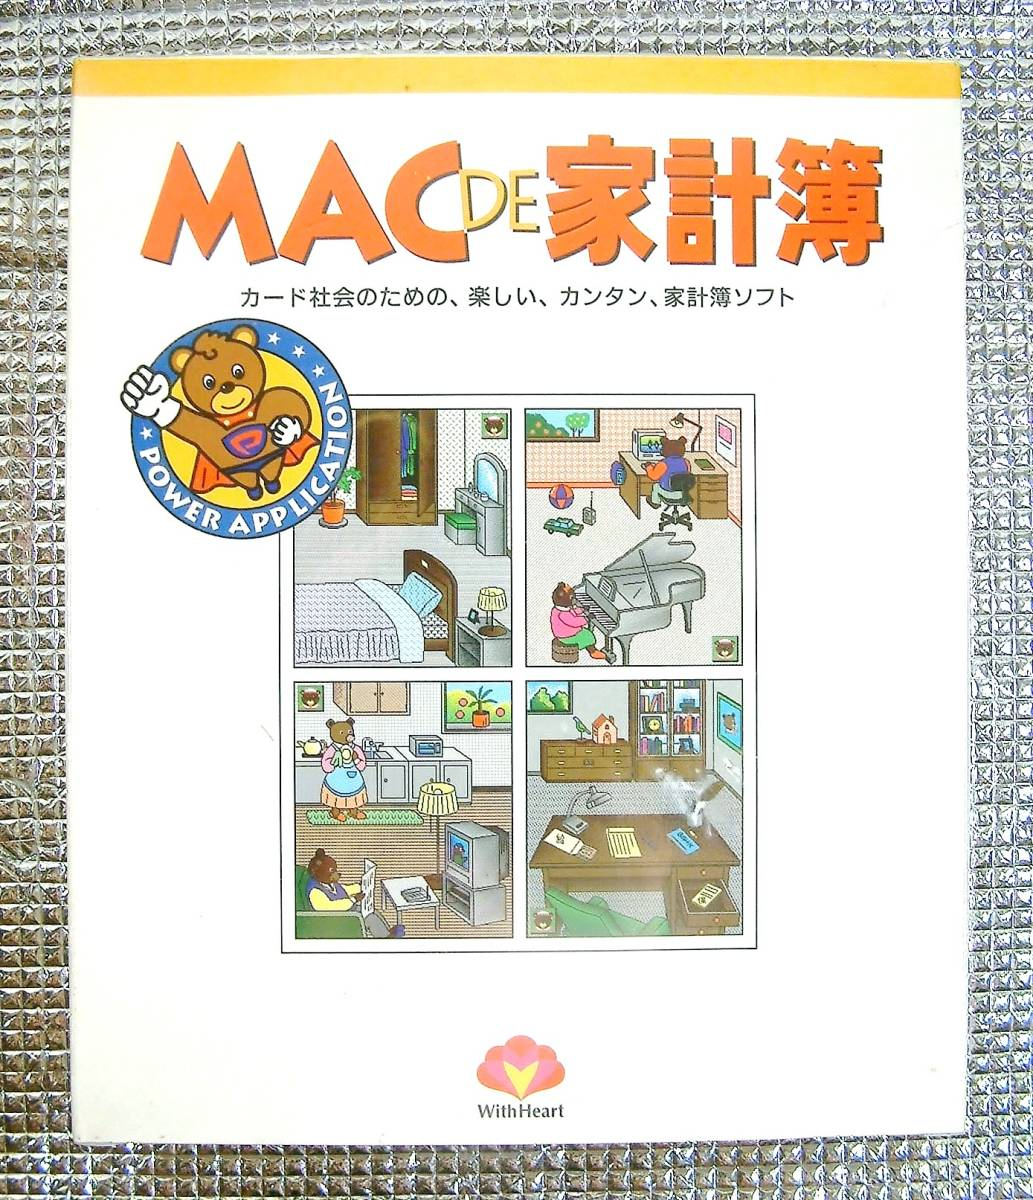 [3547] With Heart Mac de Food Book New article Unopened Macintosh (Macintosh) Household account book software WithHeart (money budget) management